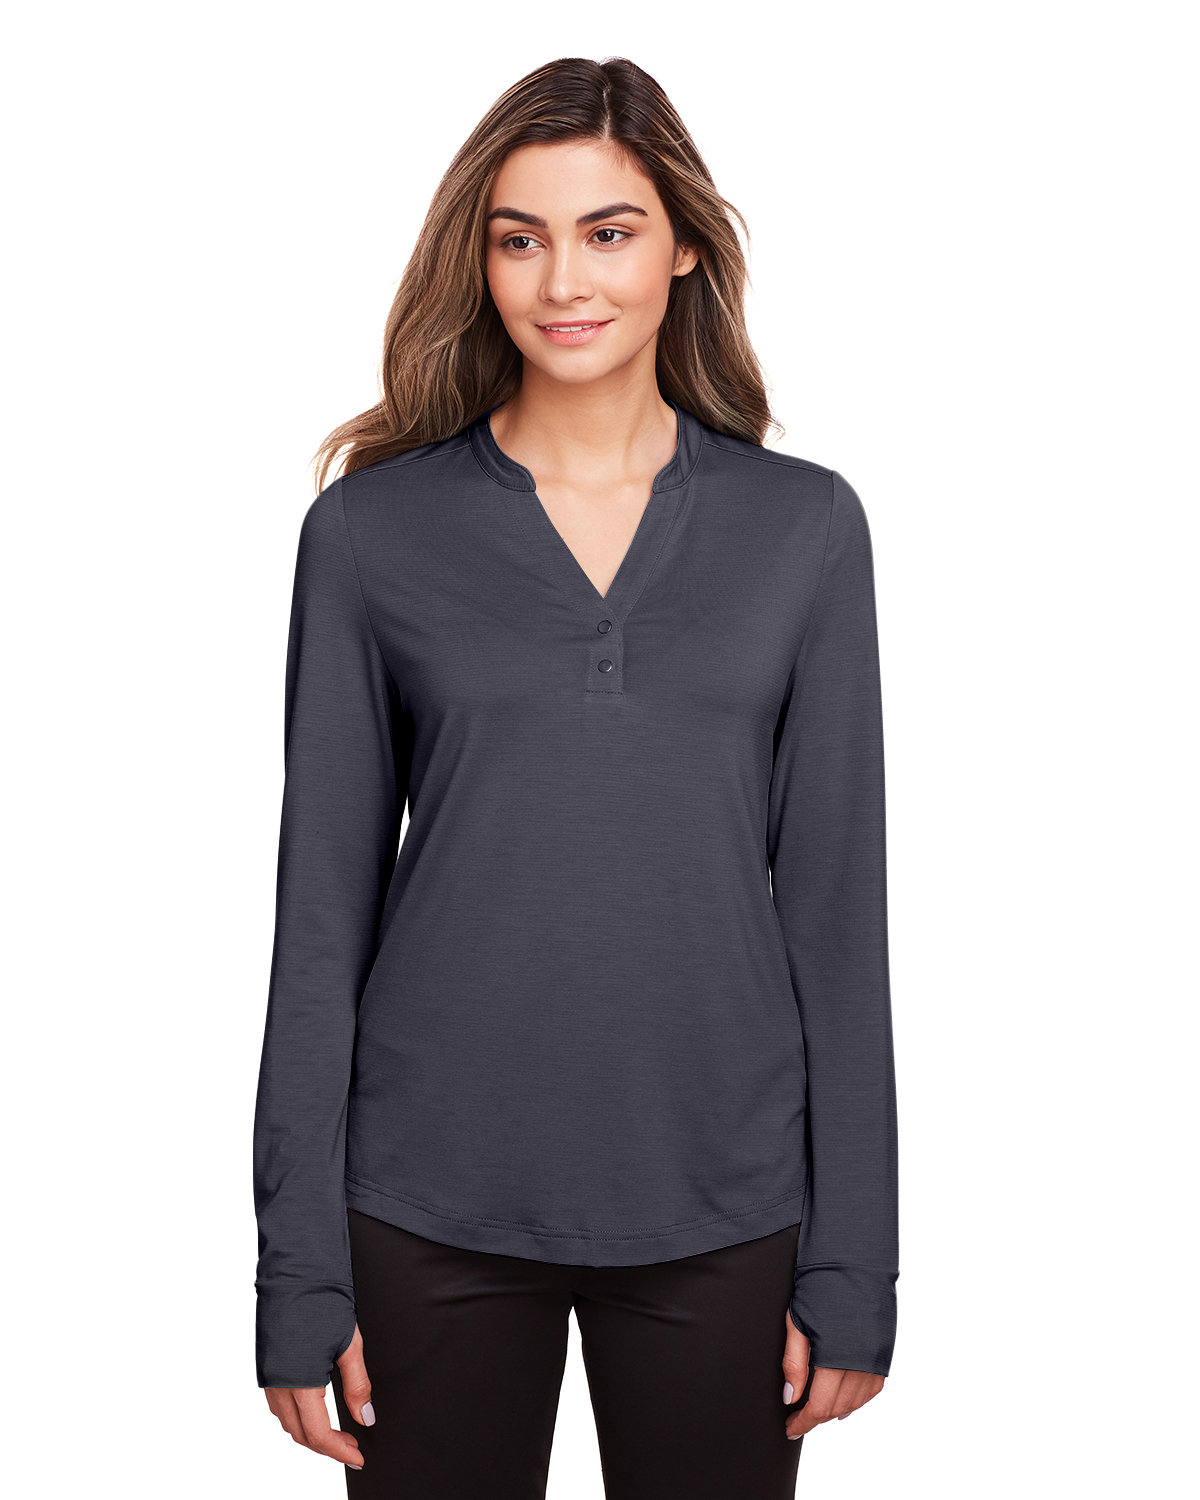 North End Ladies' Jaq Snap-Up Stretch Performance Pullover CARBON